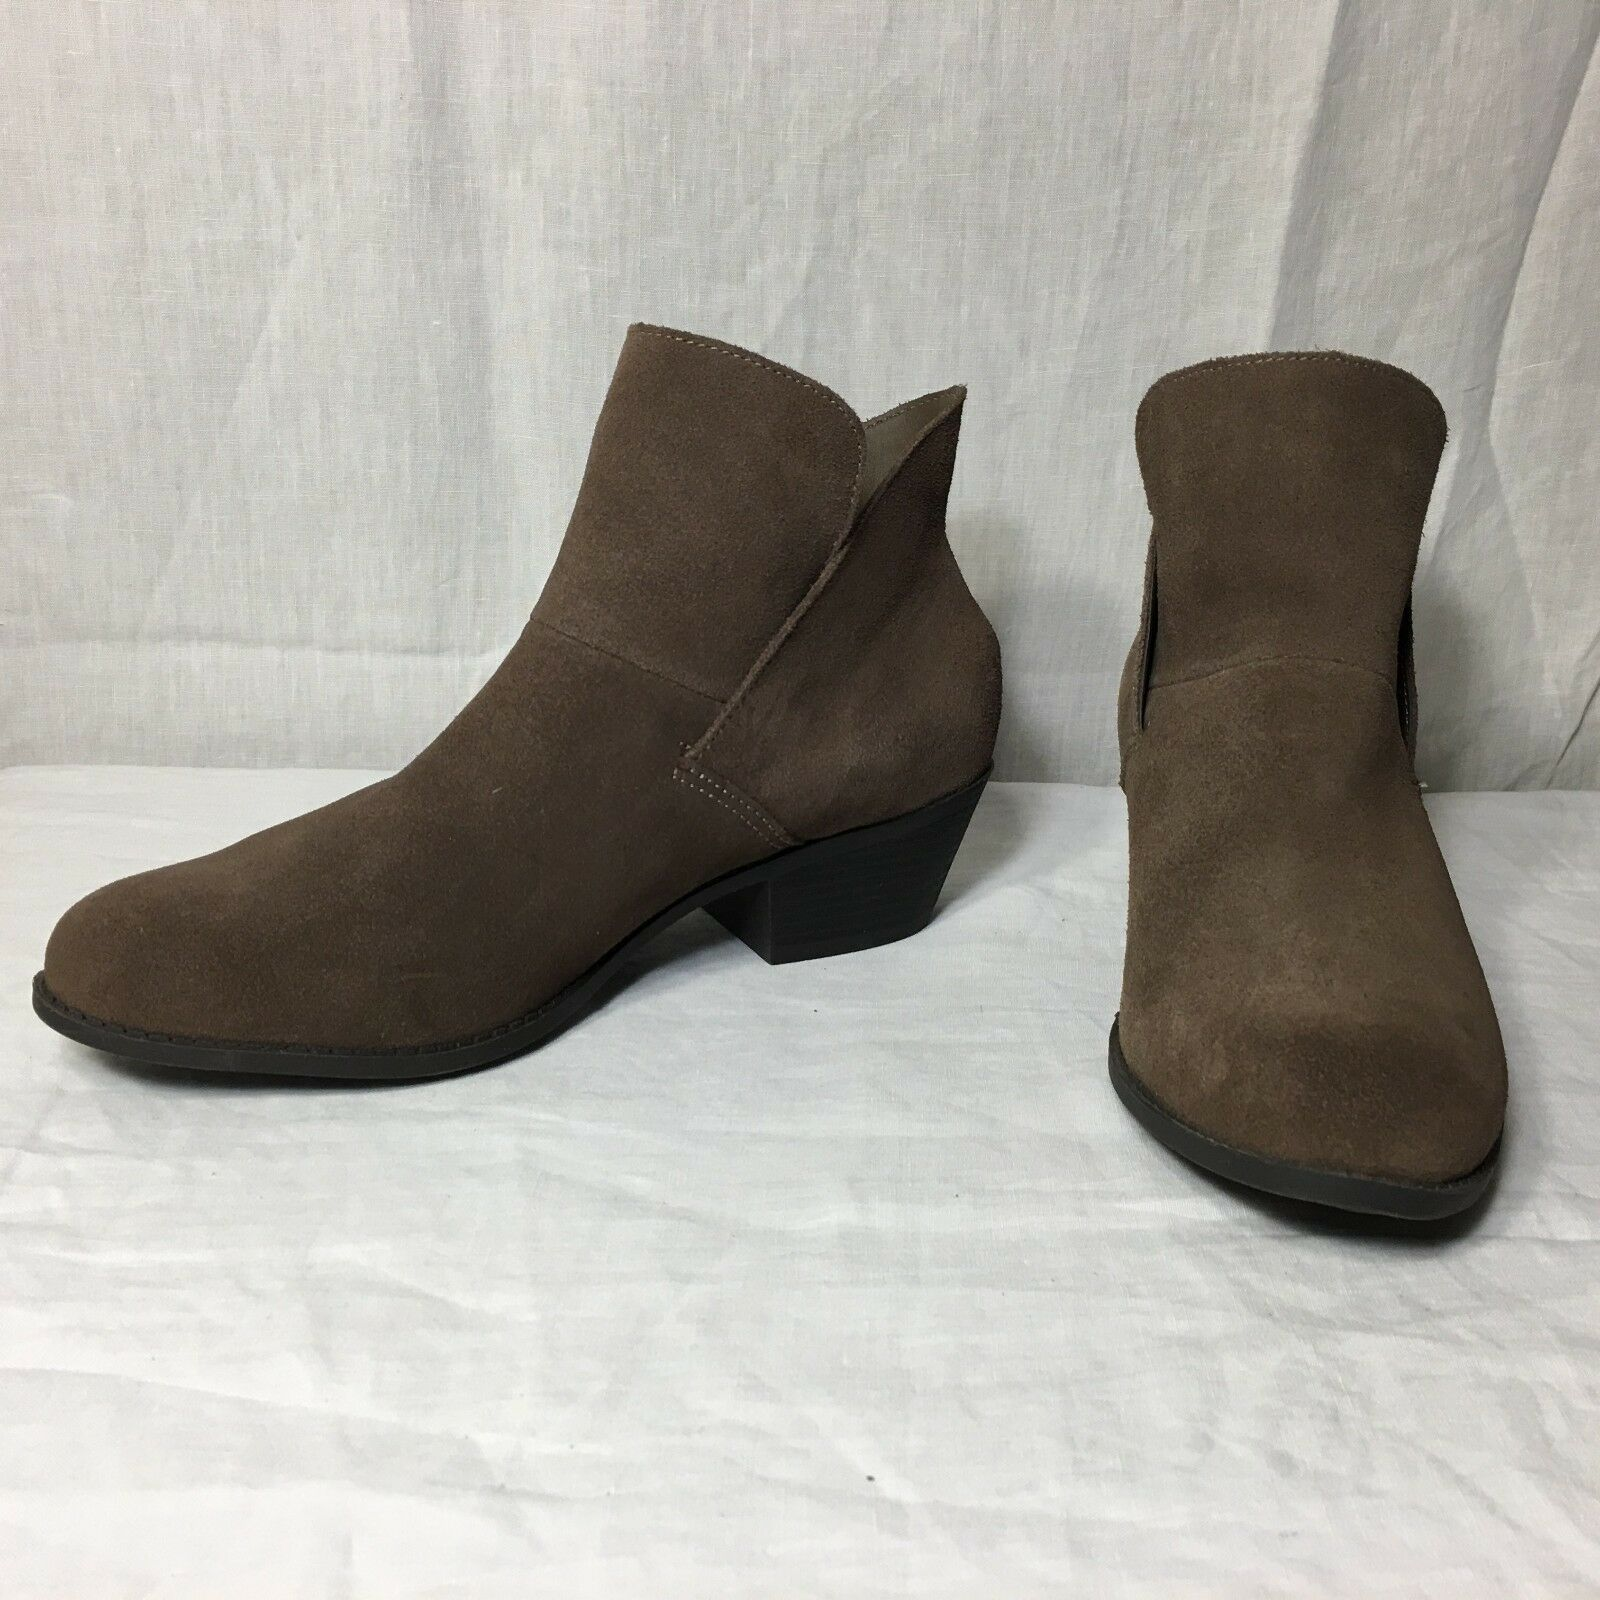 Me Too Womens 10 M Brown Leather Suede Ankle Boots Zeus High Heel shoes 2